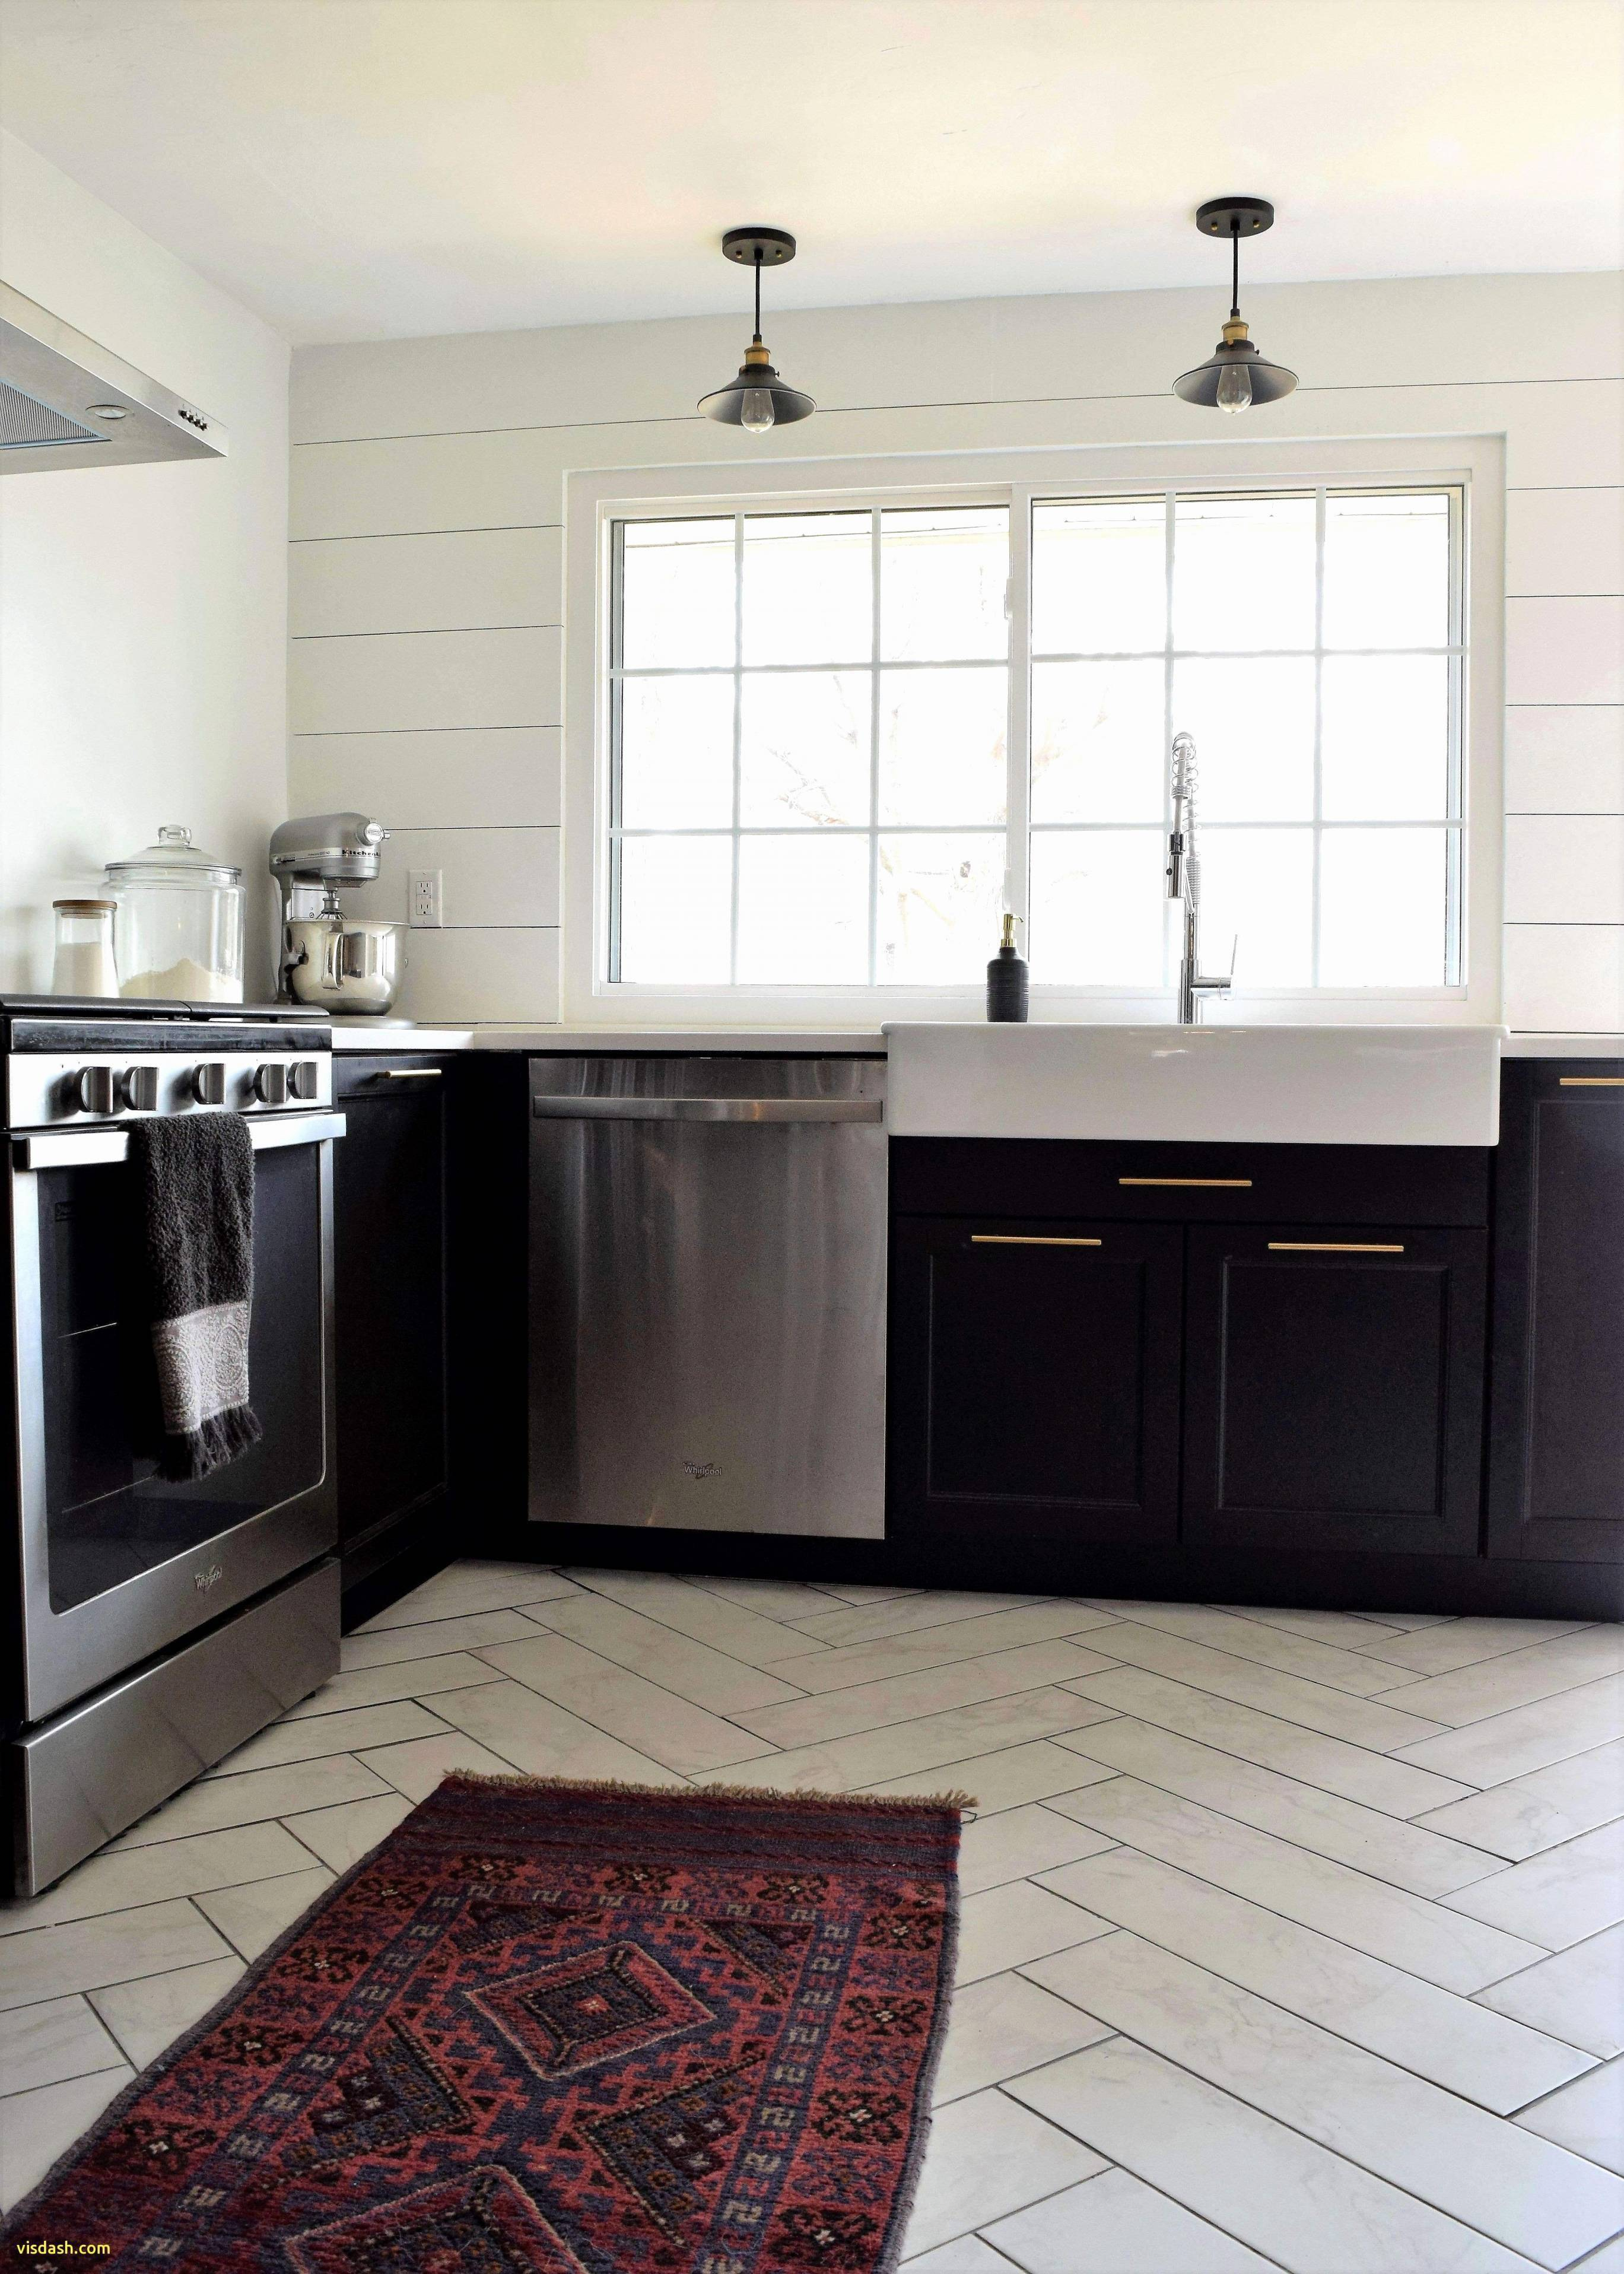 hardwood floor color with white cabinets of 20 white kitchen cabinets with honey oak floors images throughout two tone kitchen cabinets rustic beautiful kitchen design 0d design kitchen idea